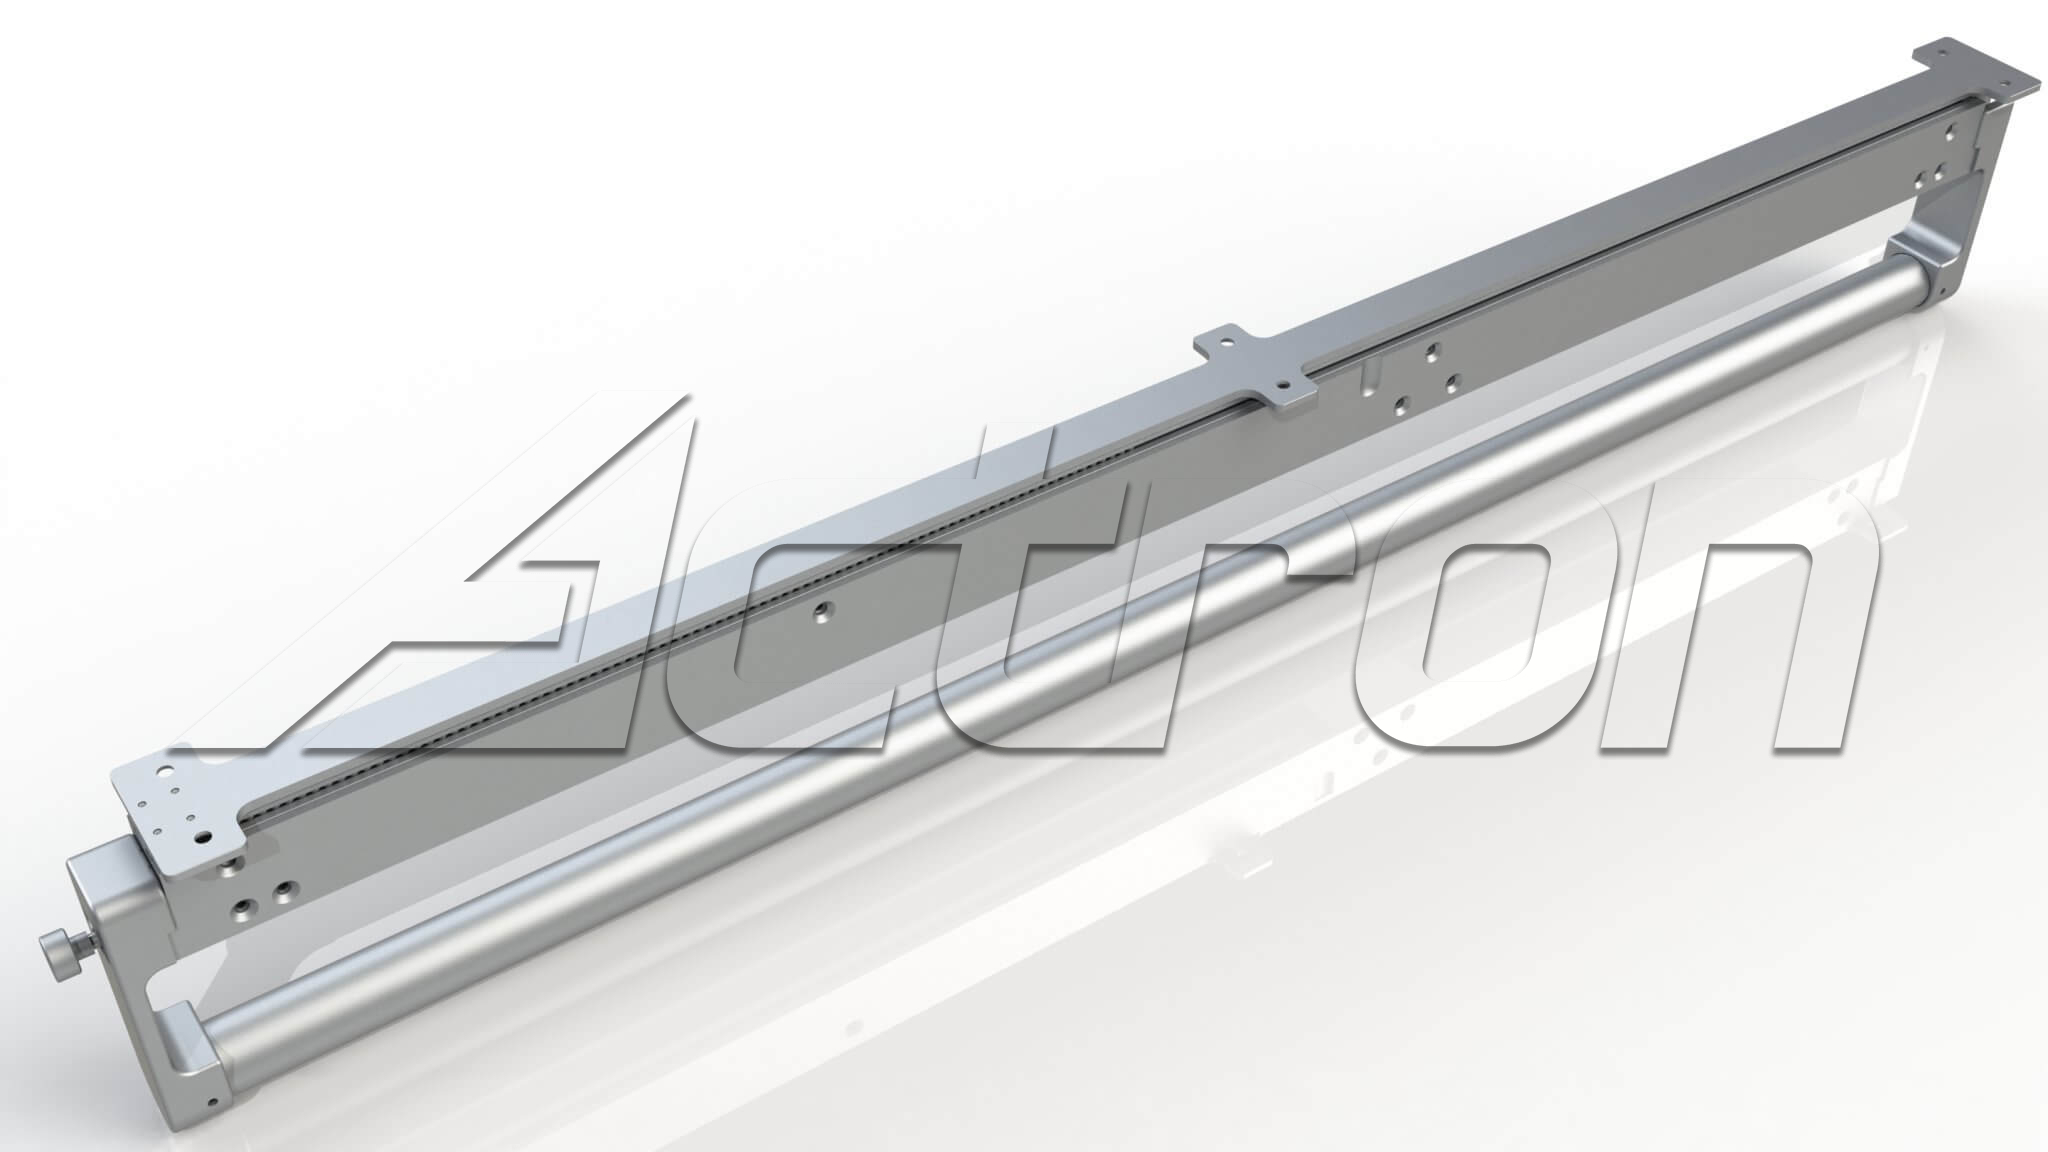 coat-rack-assy-telescoping-5001-a2035.jpg